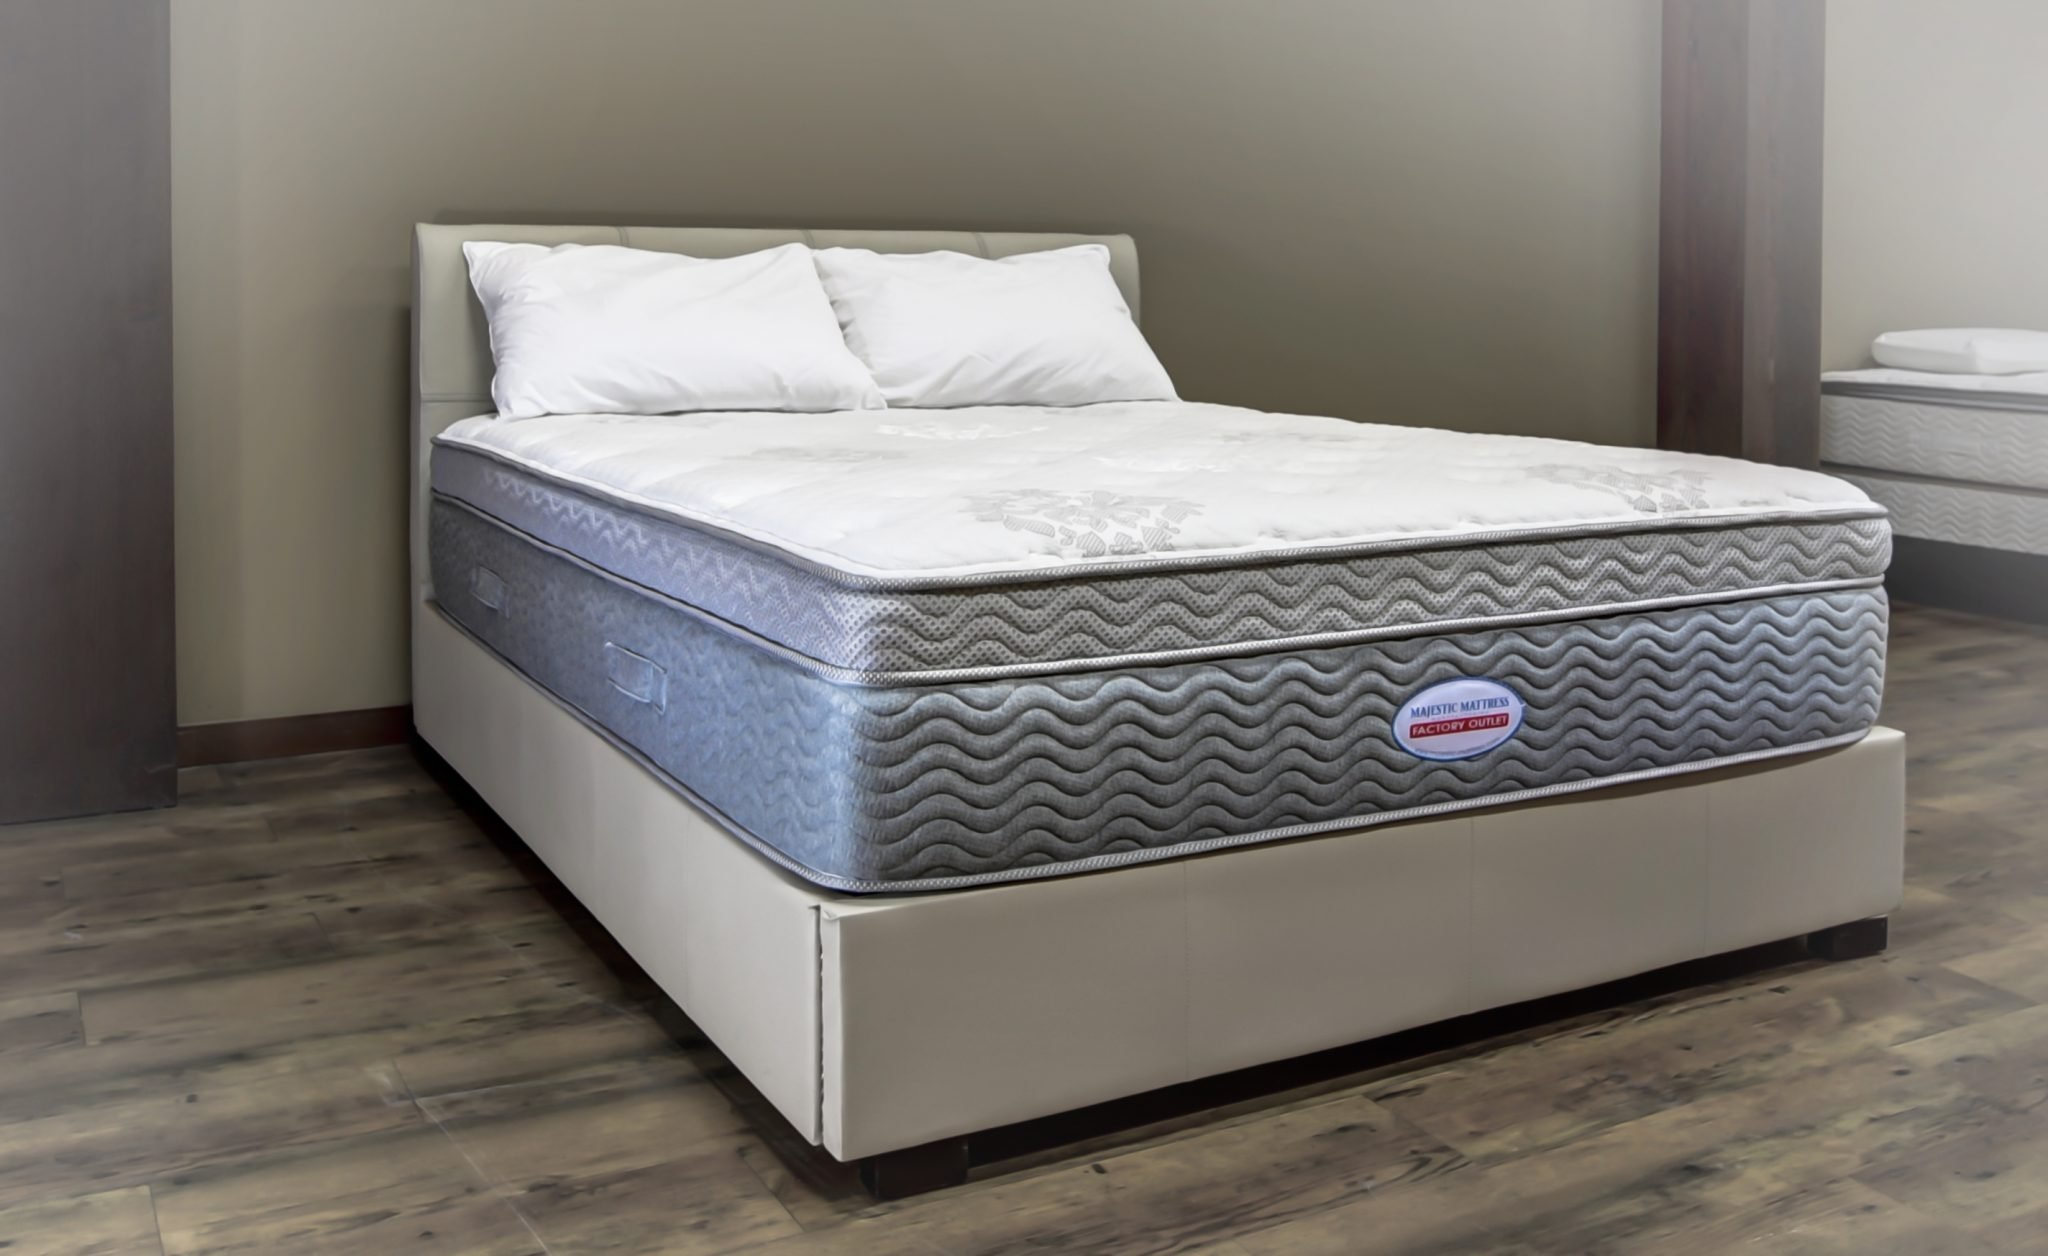 Adjustable Beds Reviews >> Sevilla | Majestic Mattress